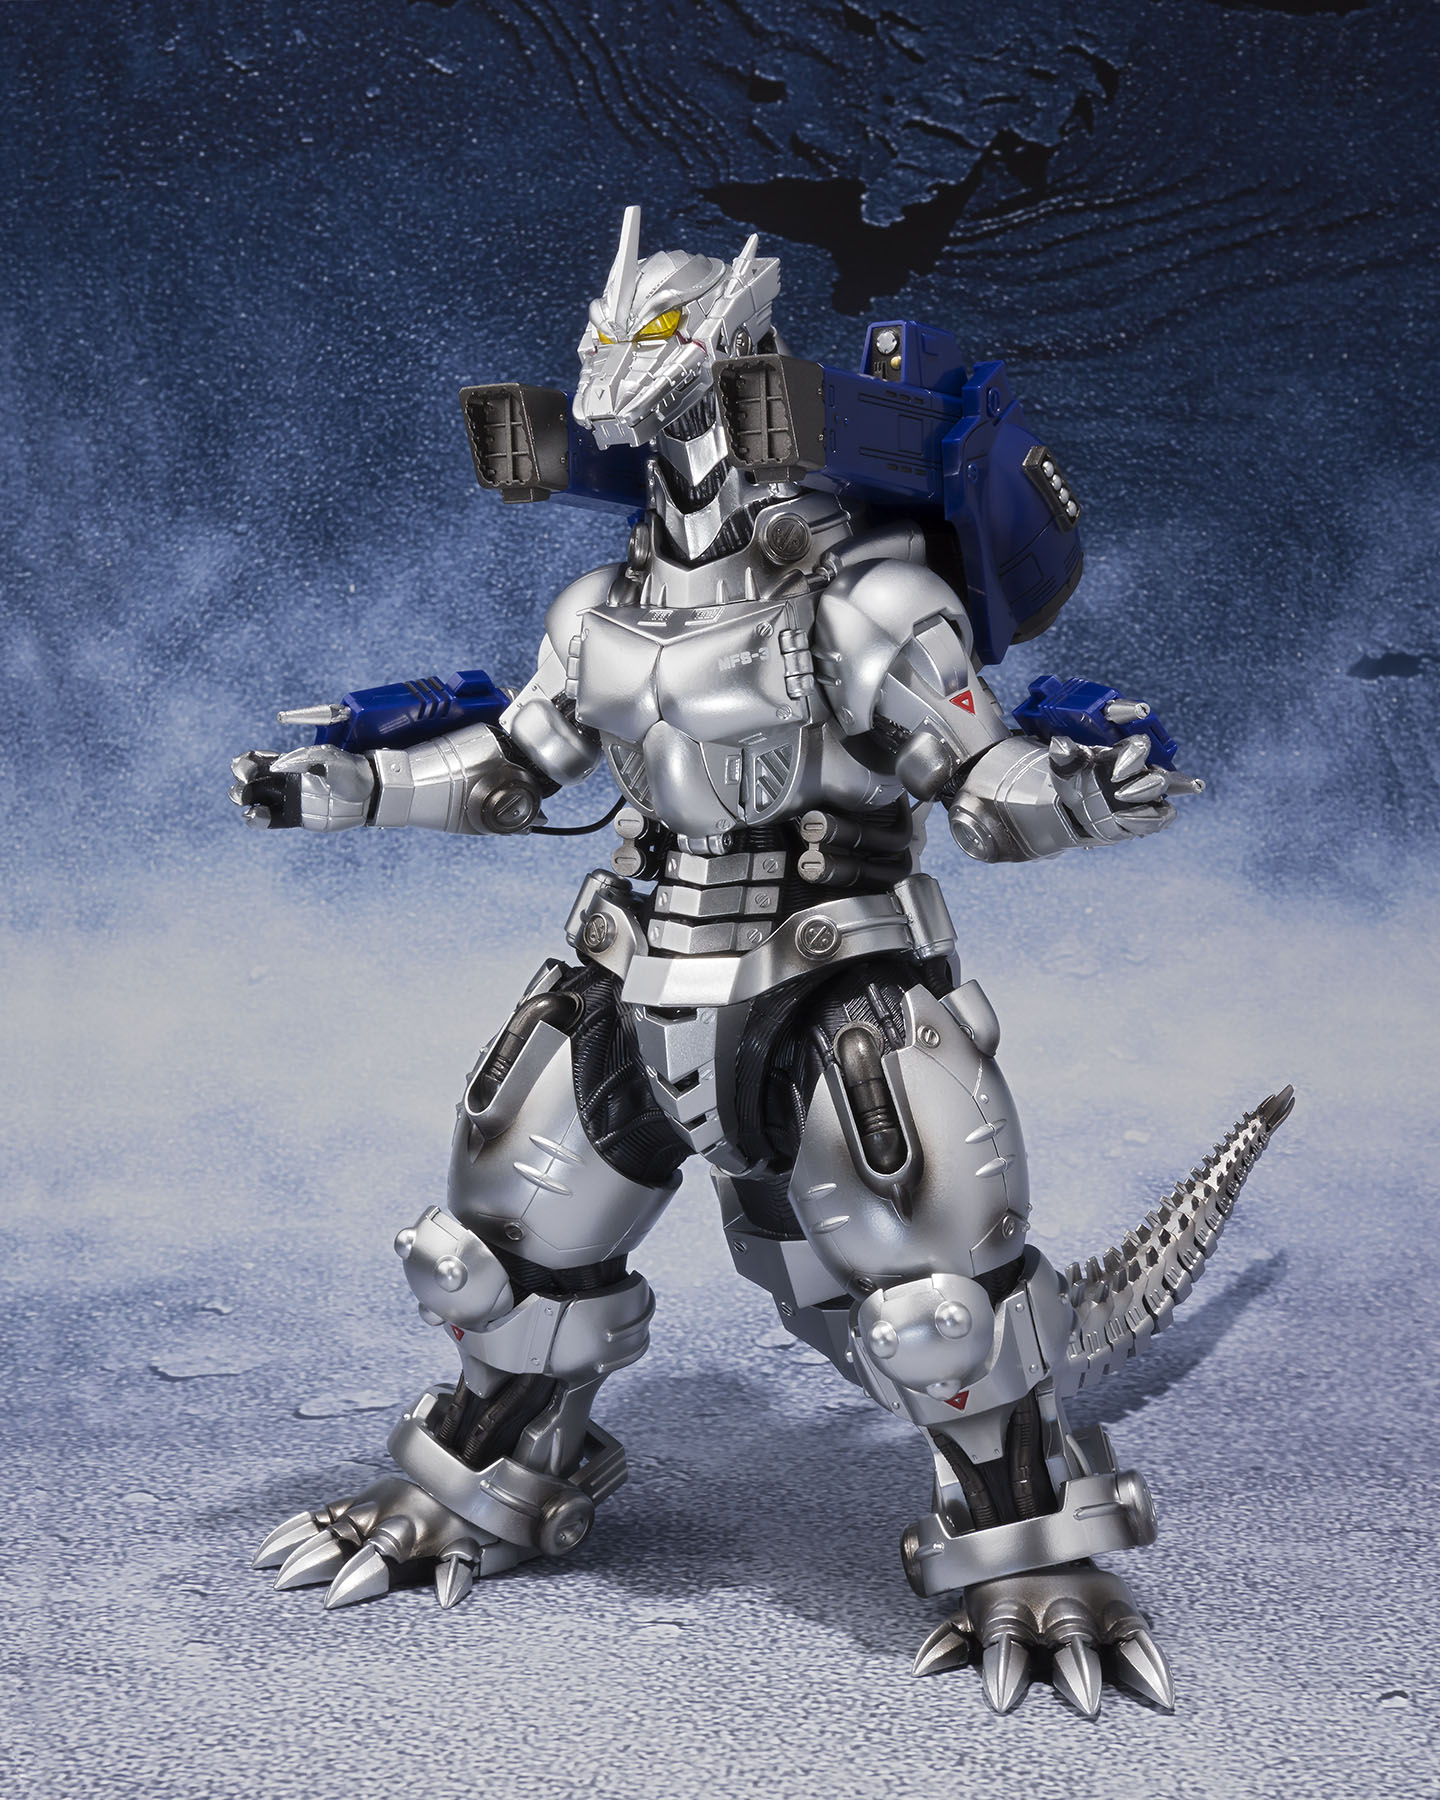 S.H. MonsterArts MFS-3 Type 3 Kiryu Mechagodzilla Final ...Kiryu Mechagodzilla